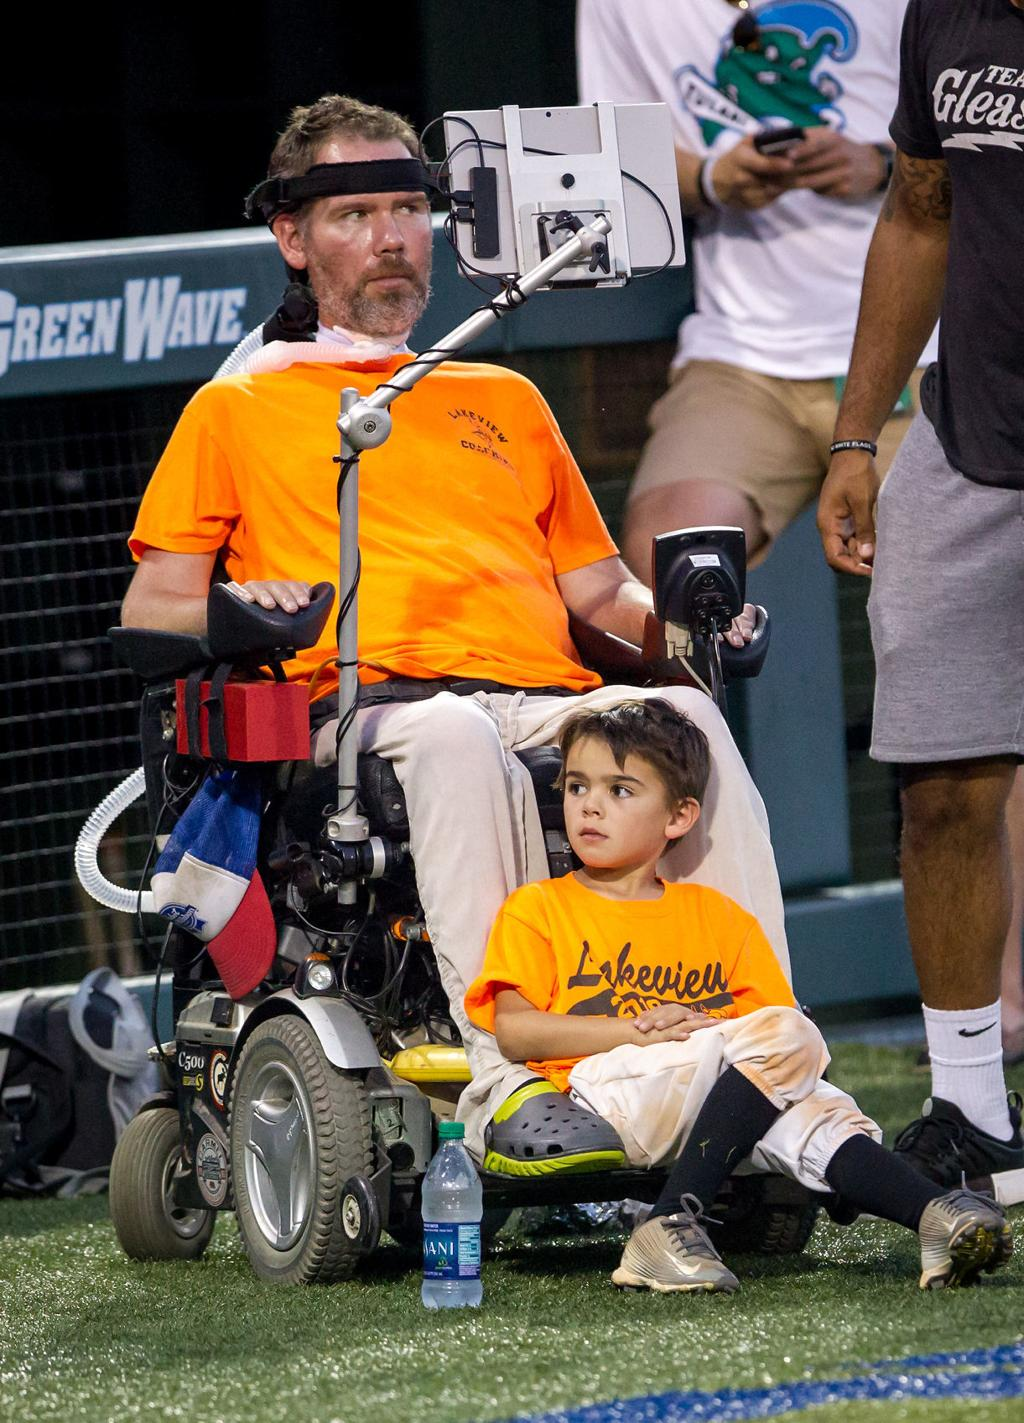 Documentary On Saints Legend Steve Gleason Nominated For Two